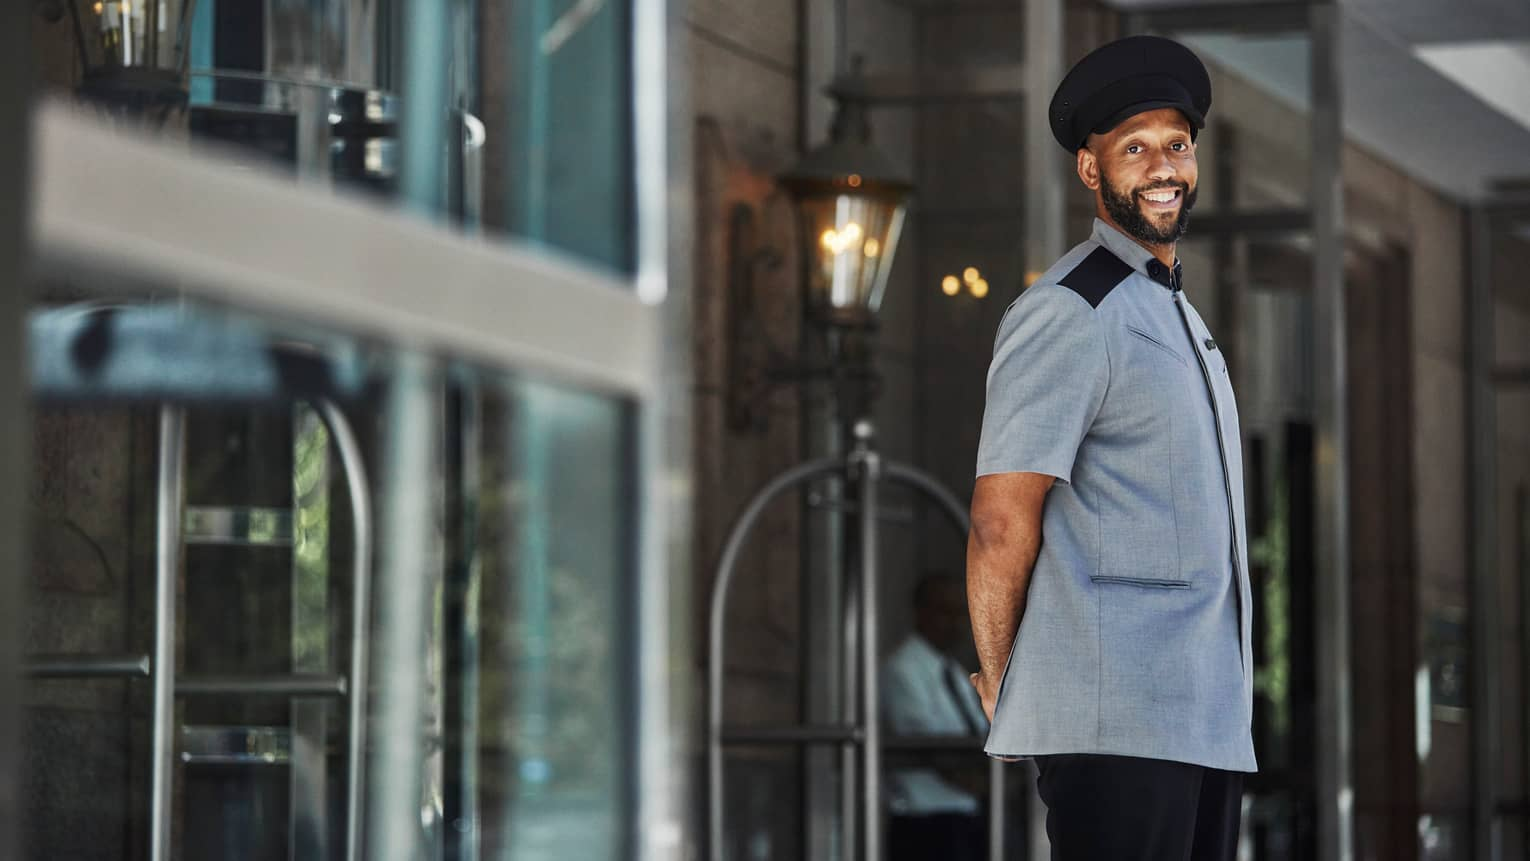 Smiling doorman in short-sleeved grey uniform and black cap with hands behind back stands at lobby door under light